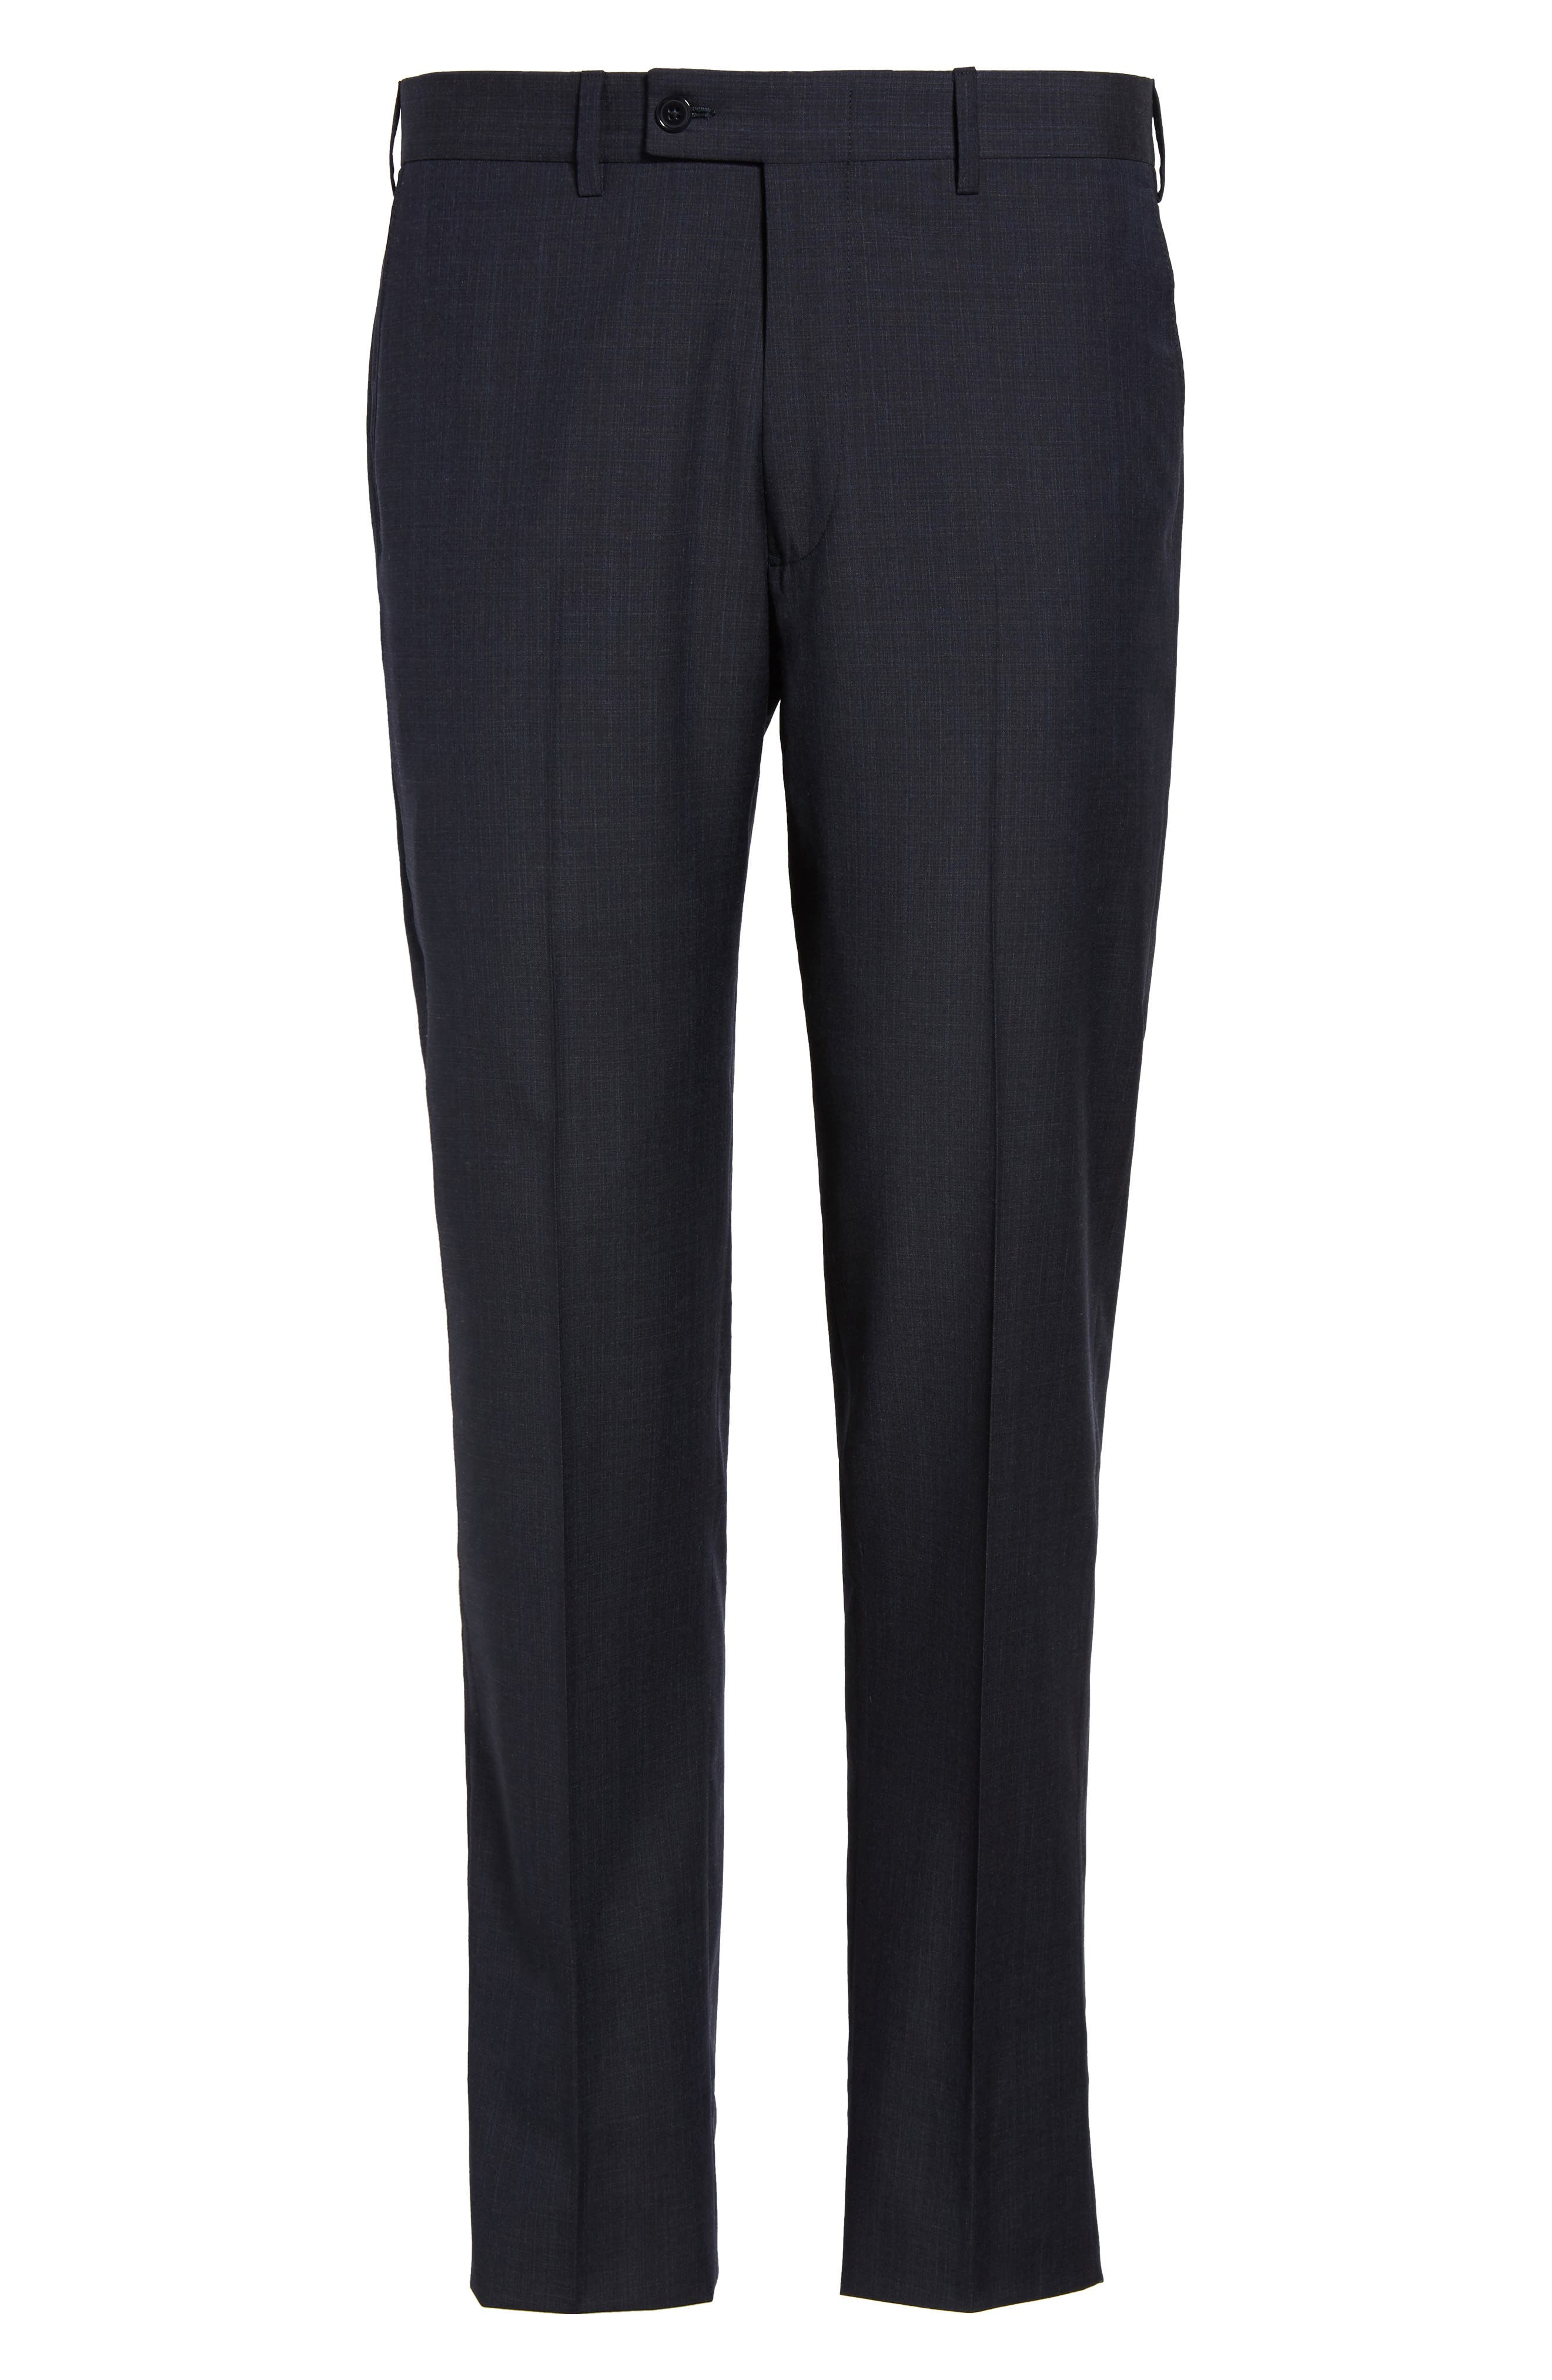 Flat Front Solid Wool Trousers,                             Alternate thumbnail 6, color,                             Navy